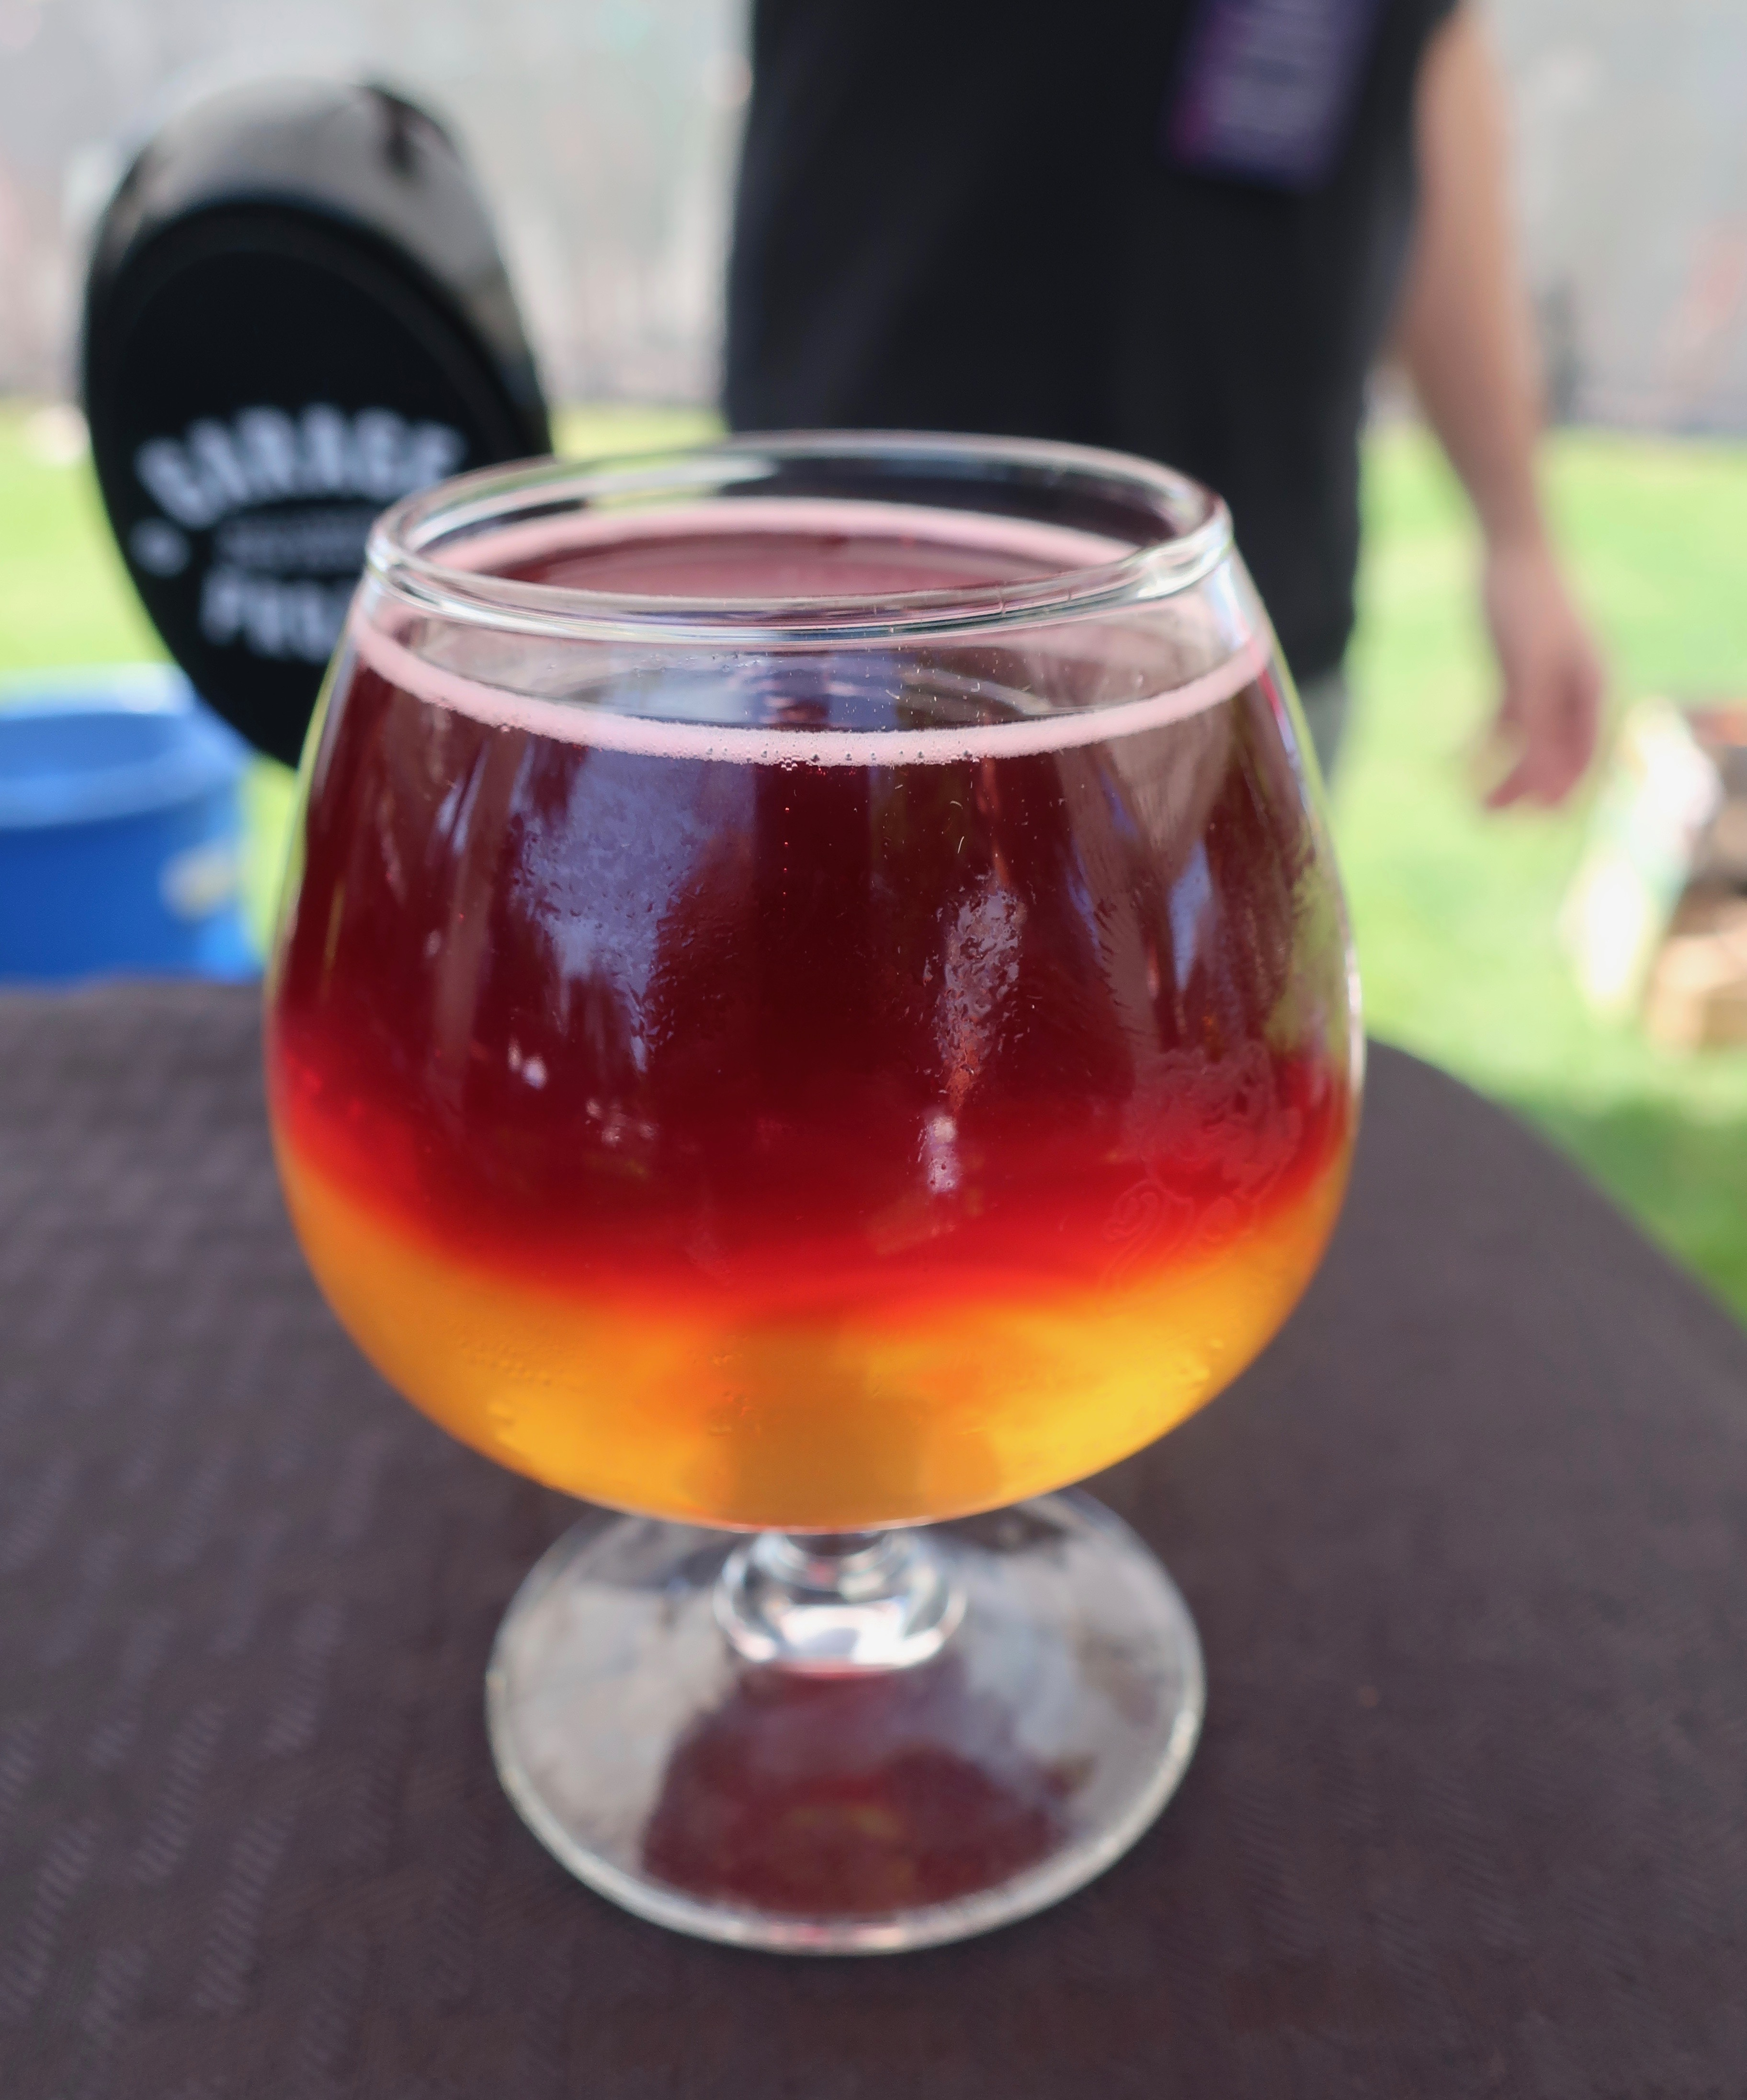 Garage Project from New Zealand impressed the massed once again at the 2019 Firestone Walker Invitational Beer Fest.